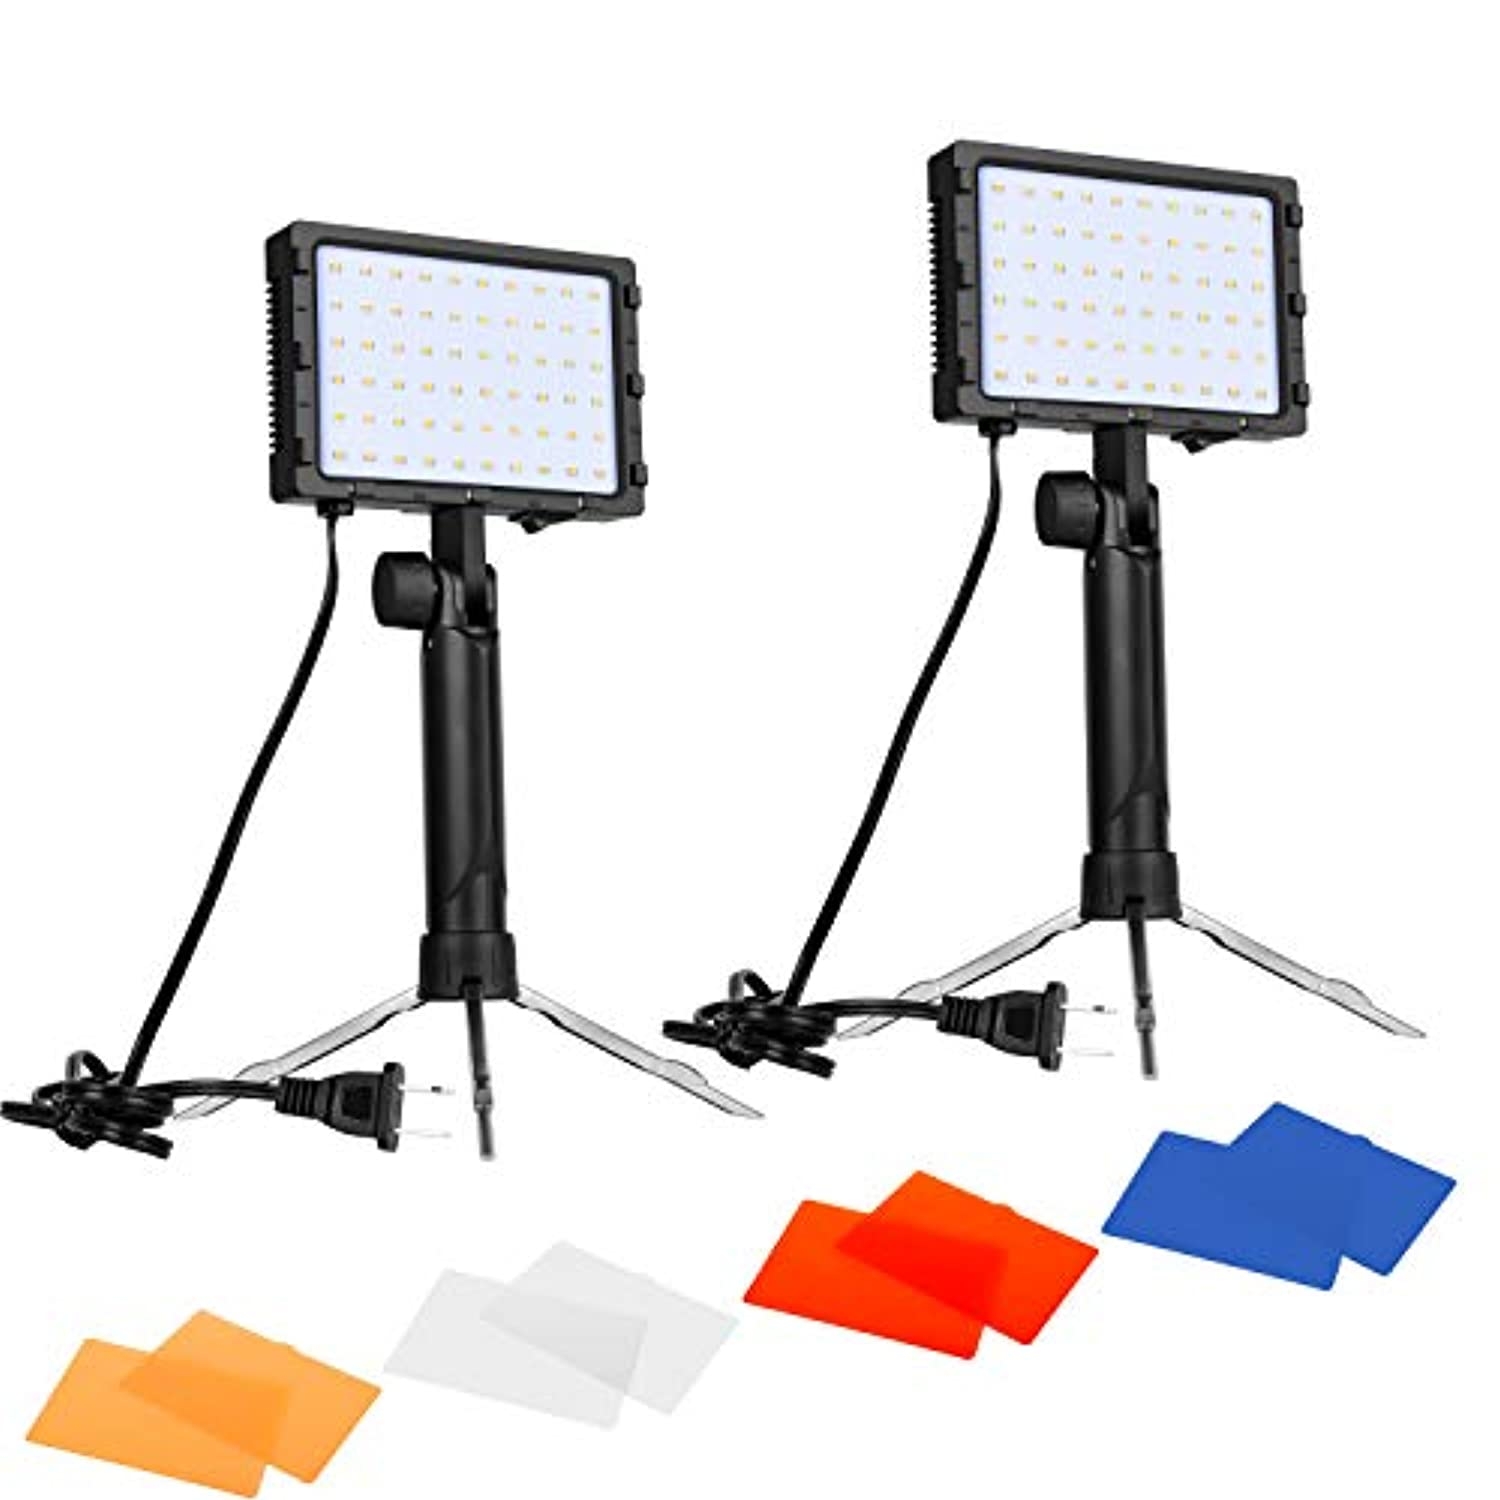 Classier: Buy Brand: EMART Emart 60 LED Continuous Portable Photography Lighting Kit for Table Top Photo Video Studio Light Lamp with Color Filters - 2 Packs